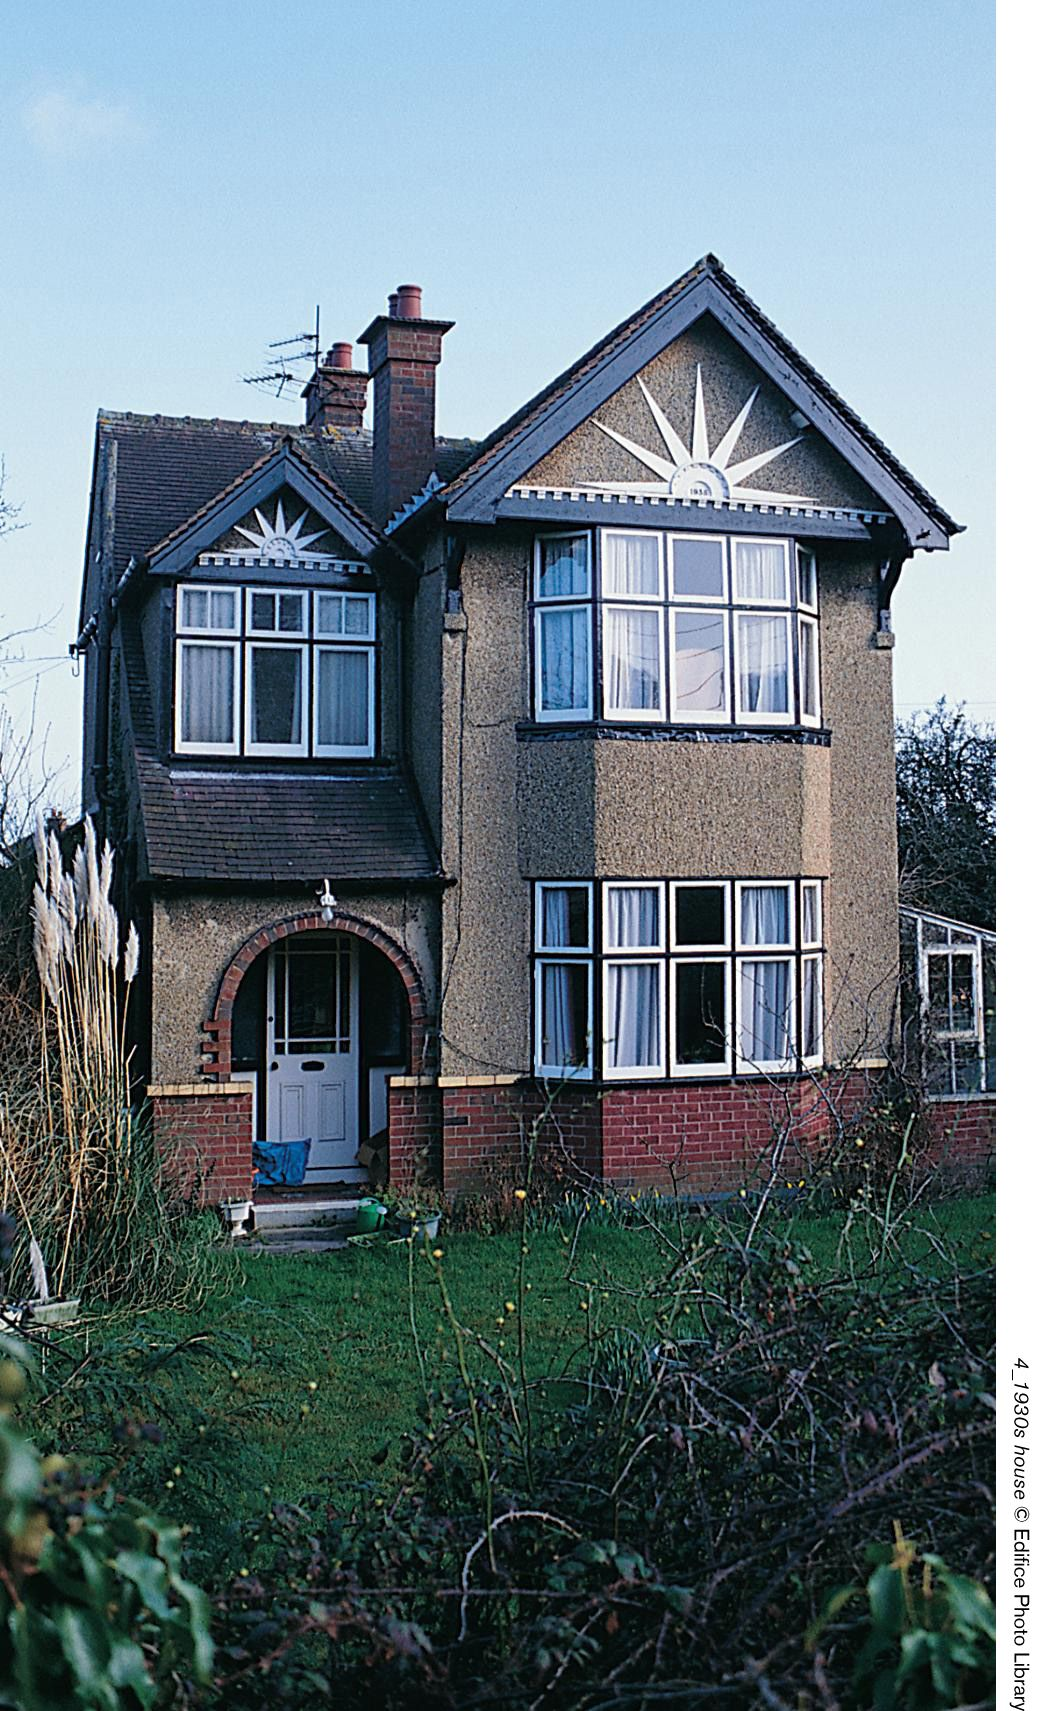 1930's house - Google Search | 1930's | 1930s house, 1930s ...